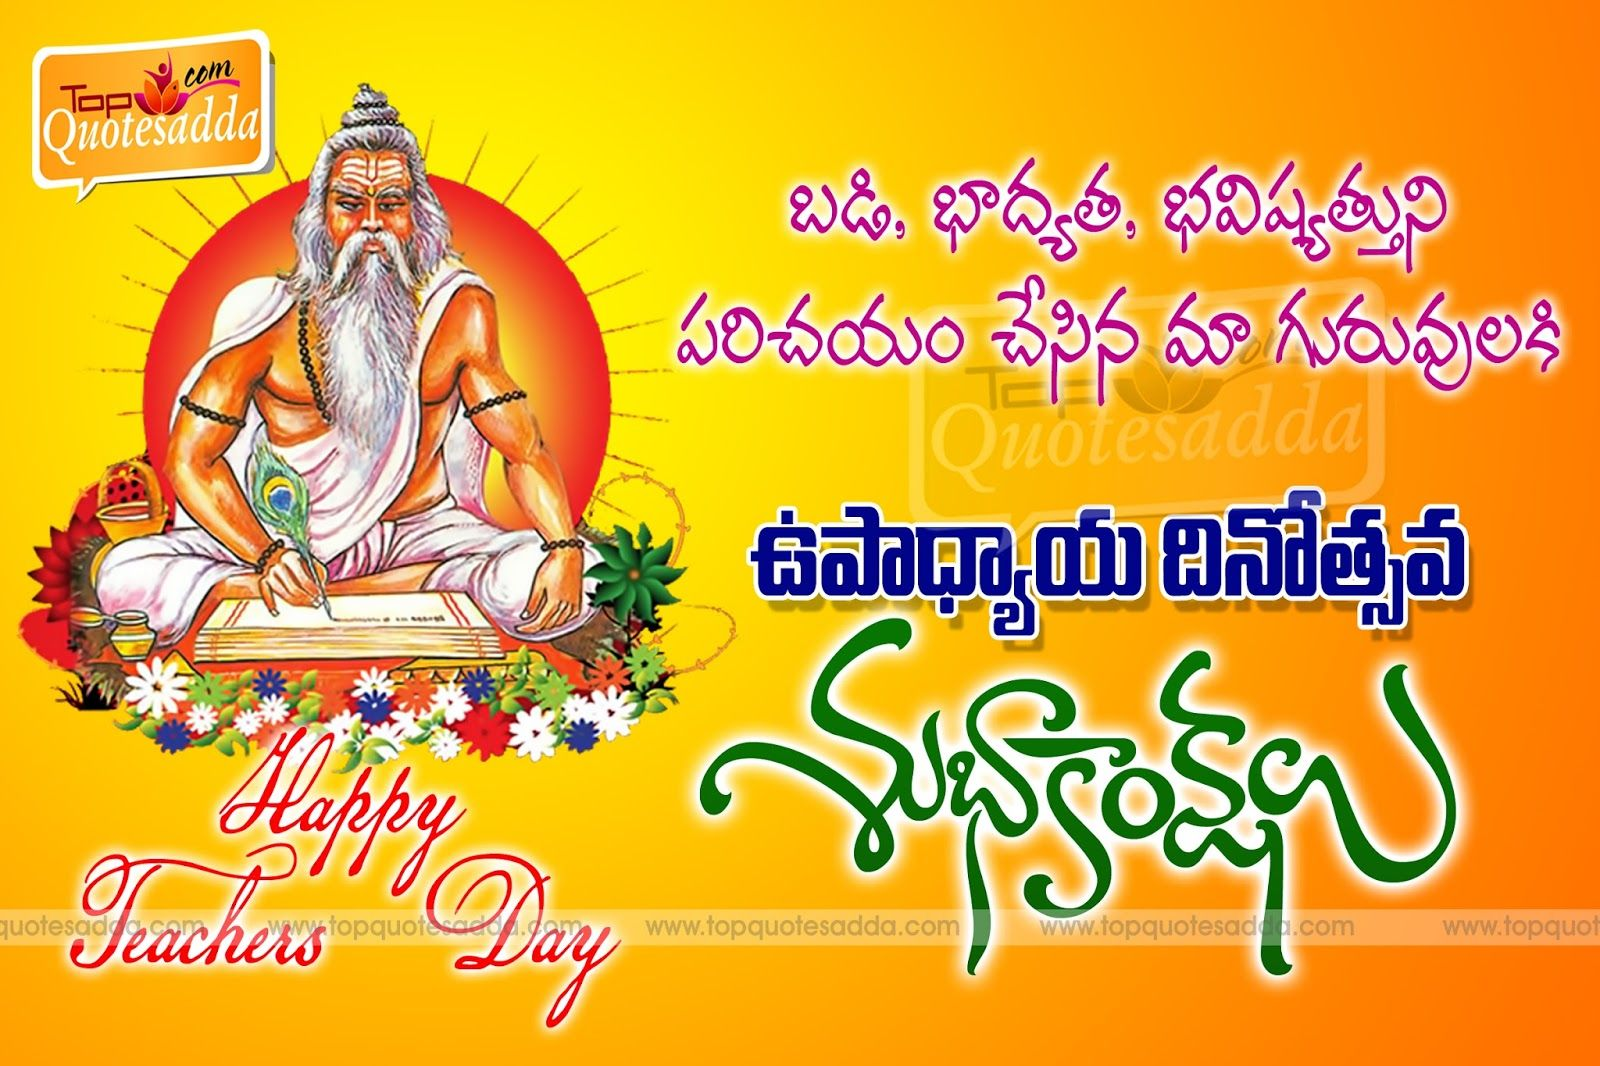 Here is a happy teachers day telugu greetings quotes teachers day here is a happy teachers day telugu greetings quotes teachers day wishes and kristyandbryce Choice Image